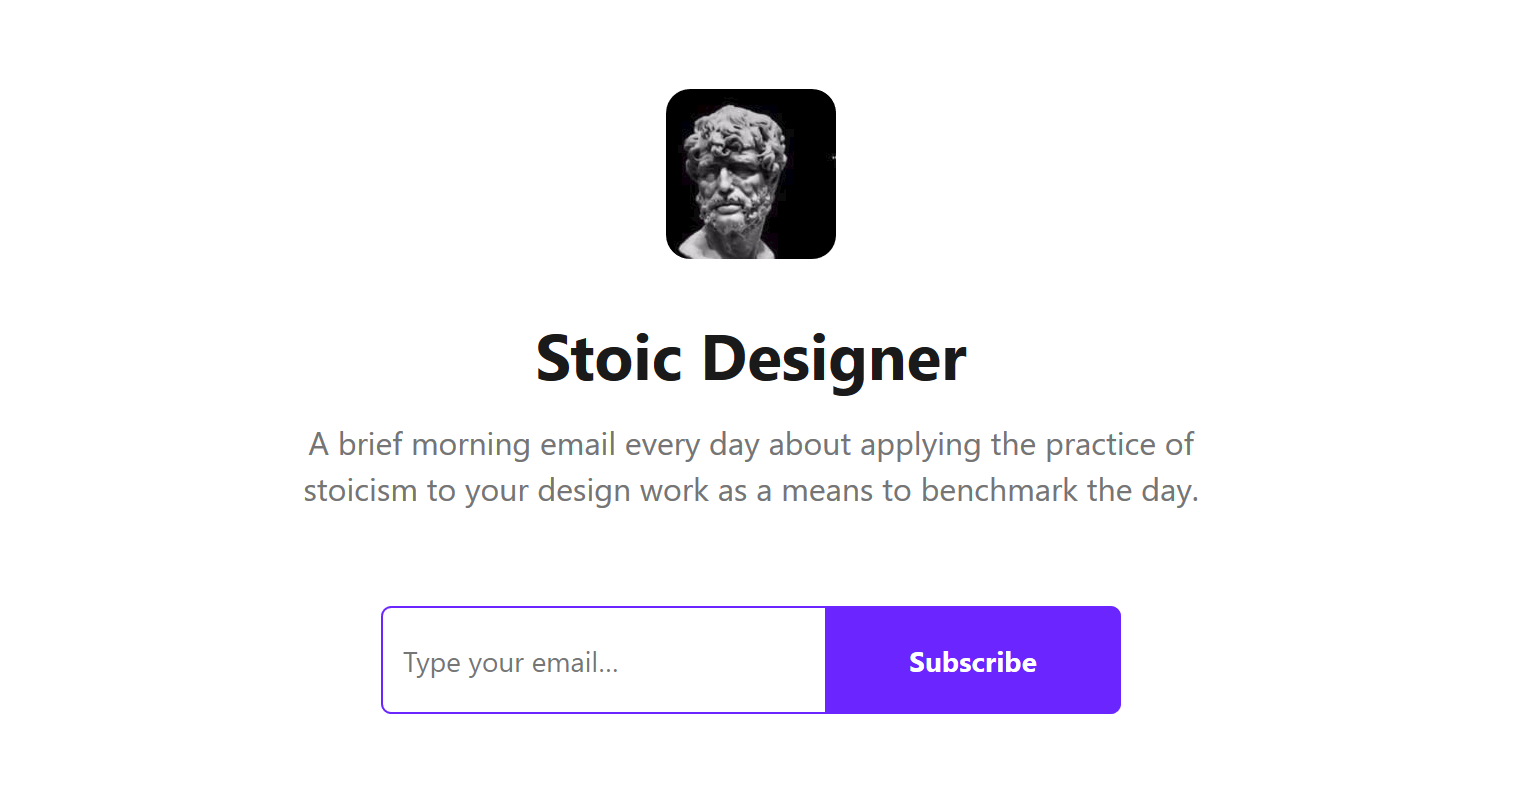 Subscribe to Stoic Designer, a brief morning email every day about applying the practice of stoicism to your design work.